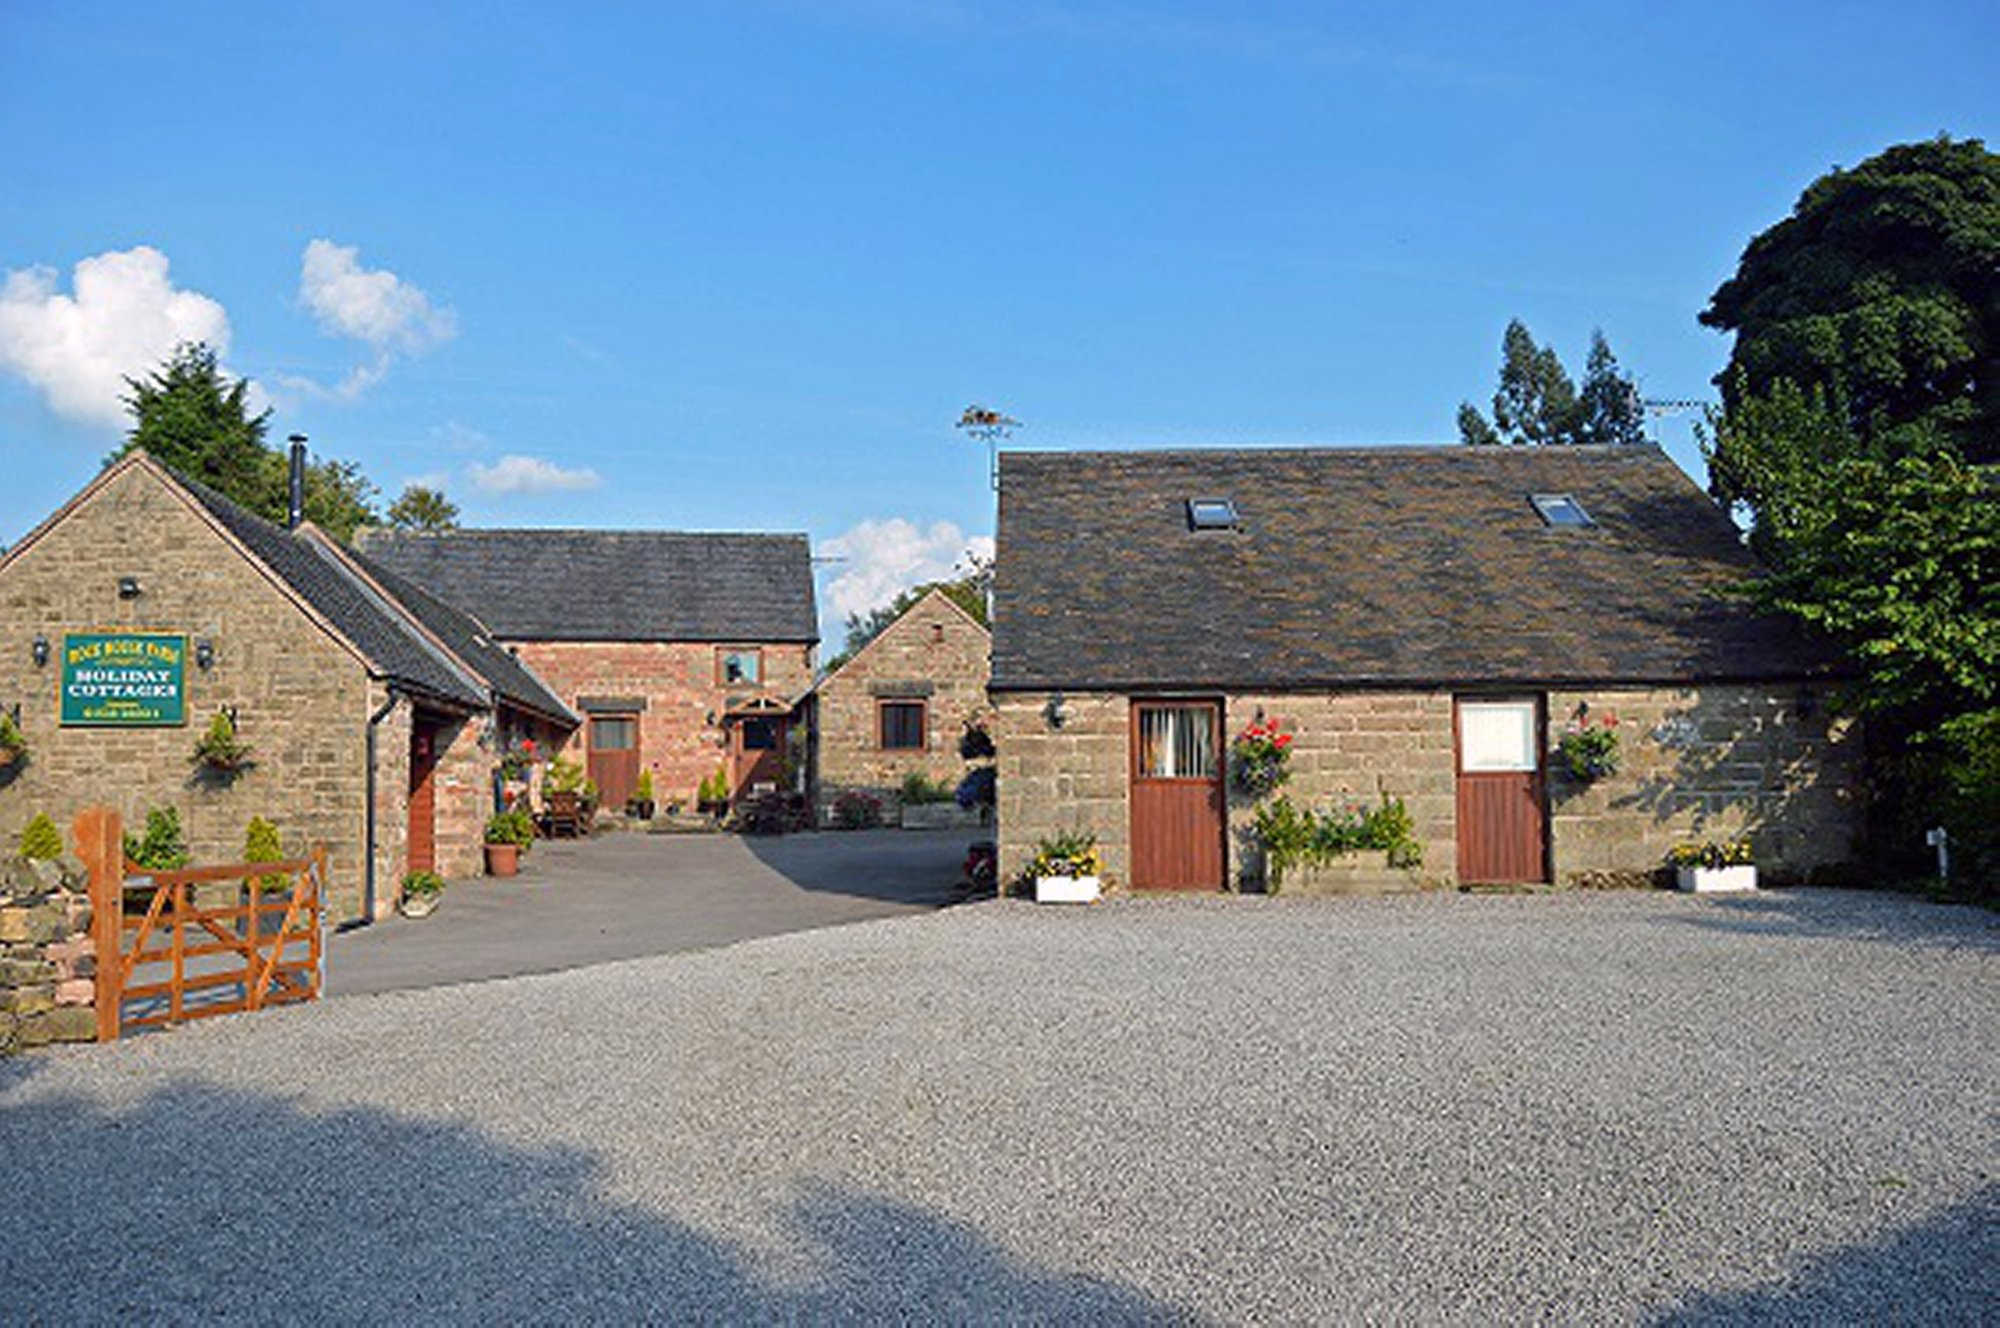 Rock House Farm Holiday Cottages